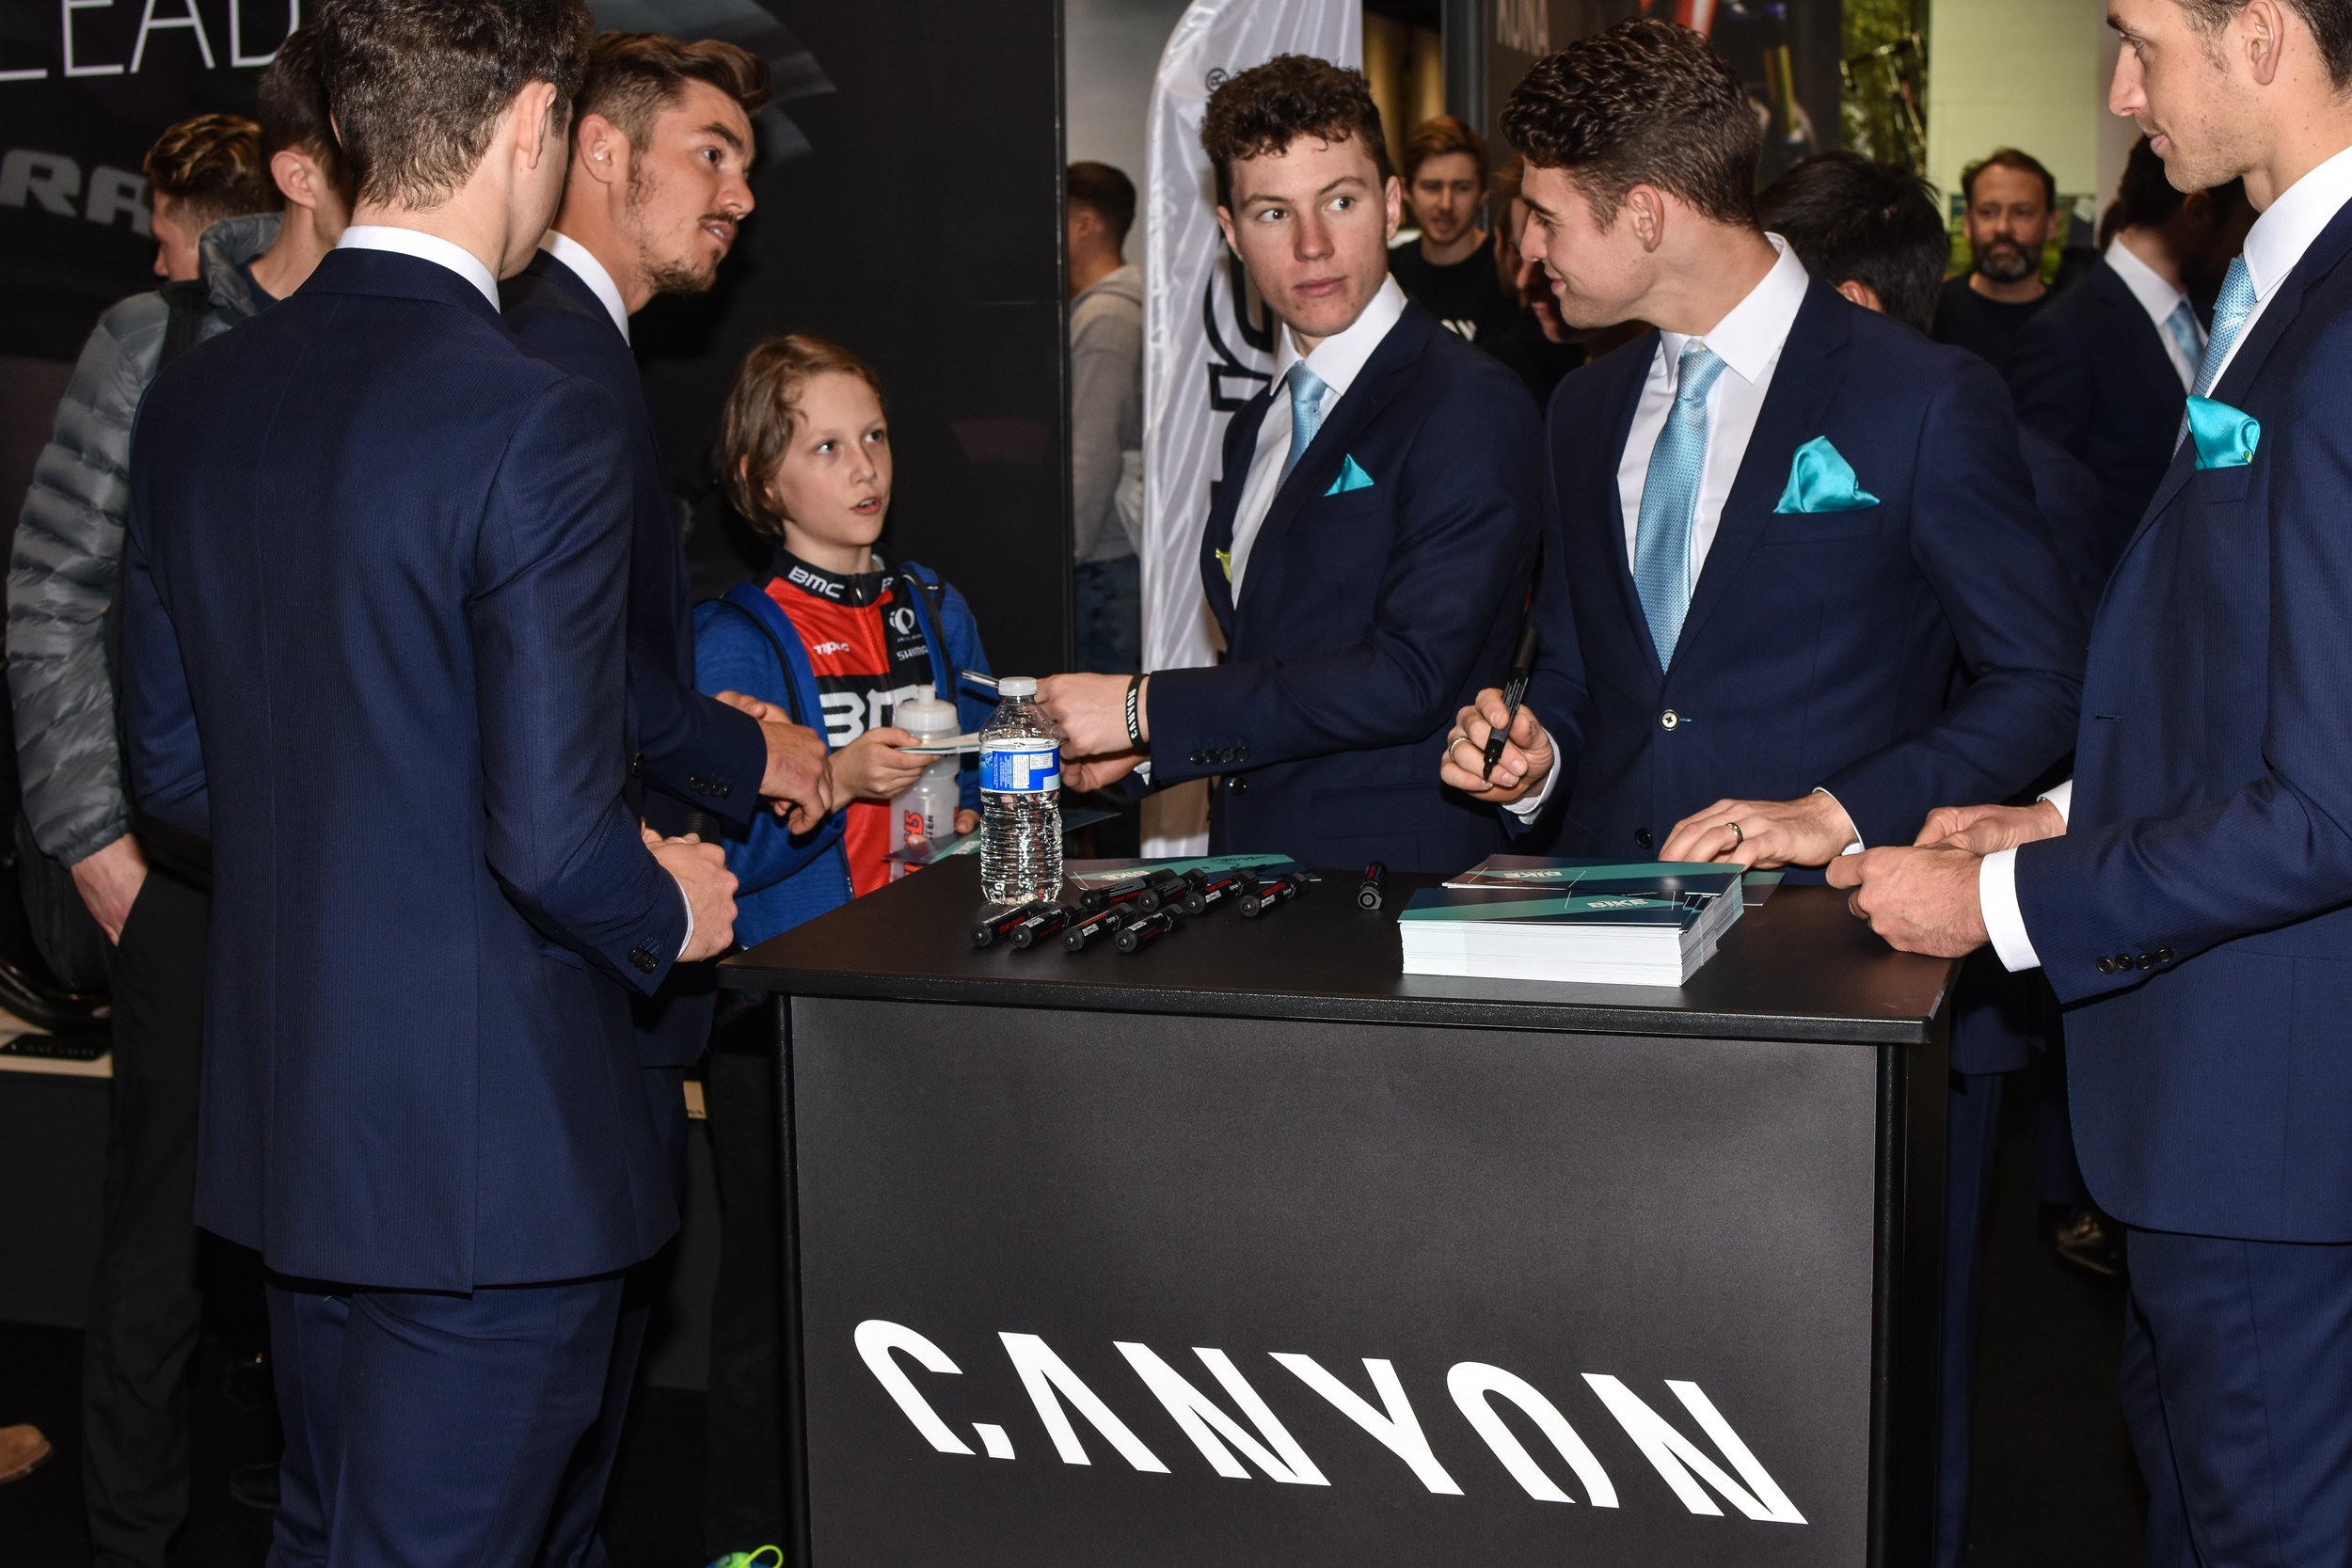 A young cyclist asking for an autograph from the team